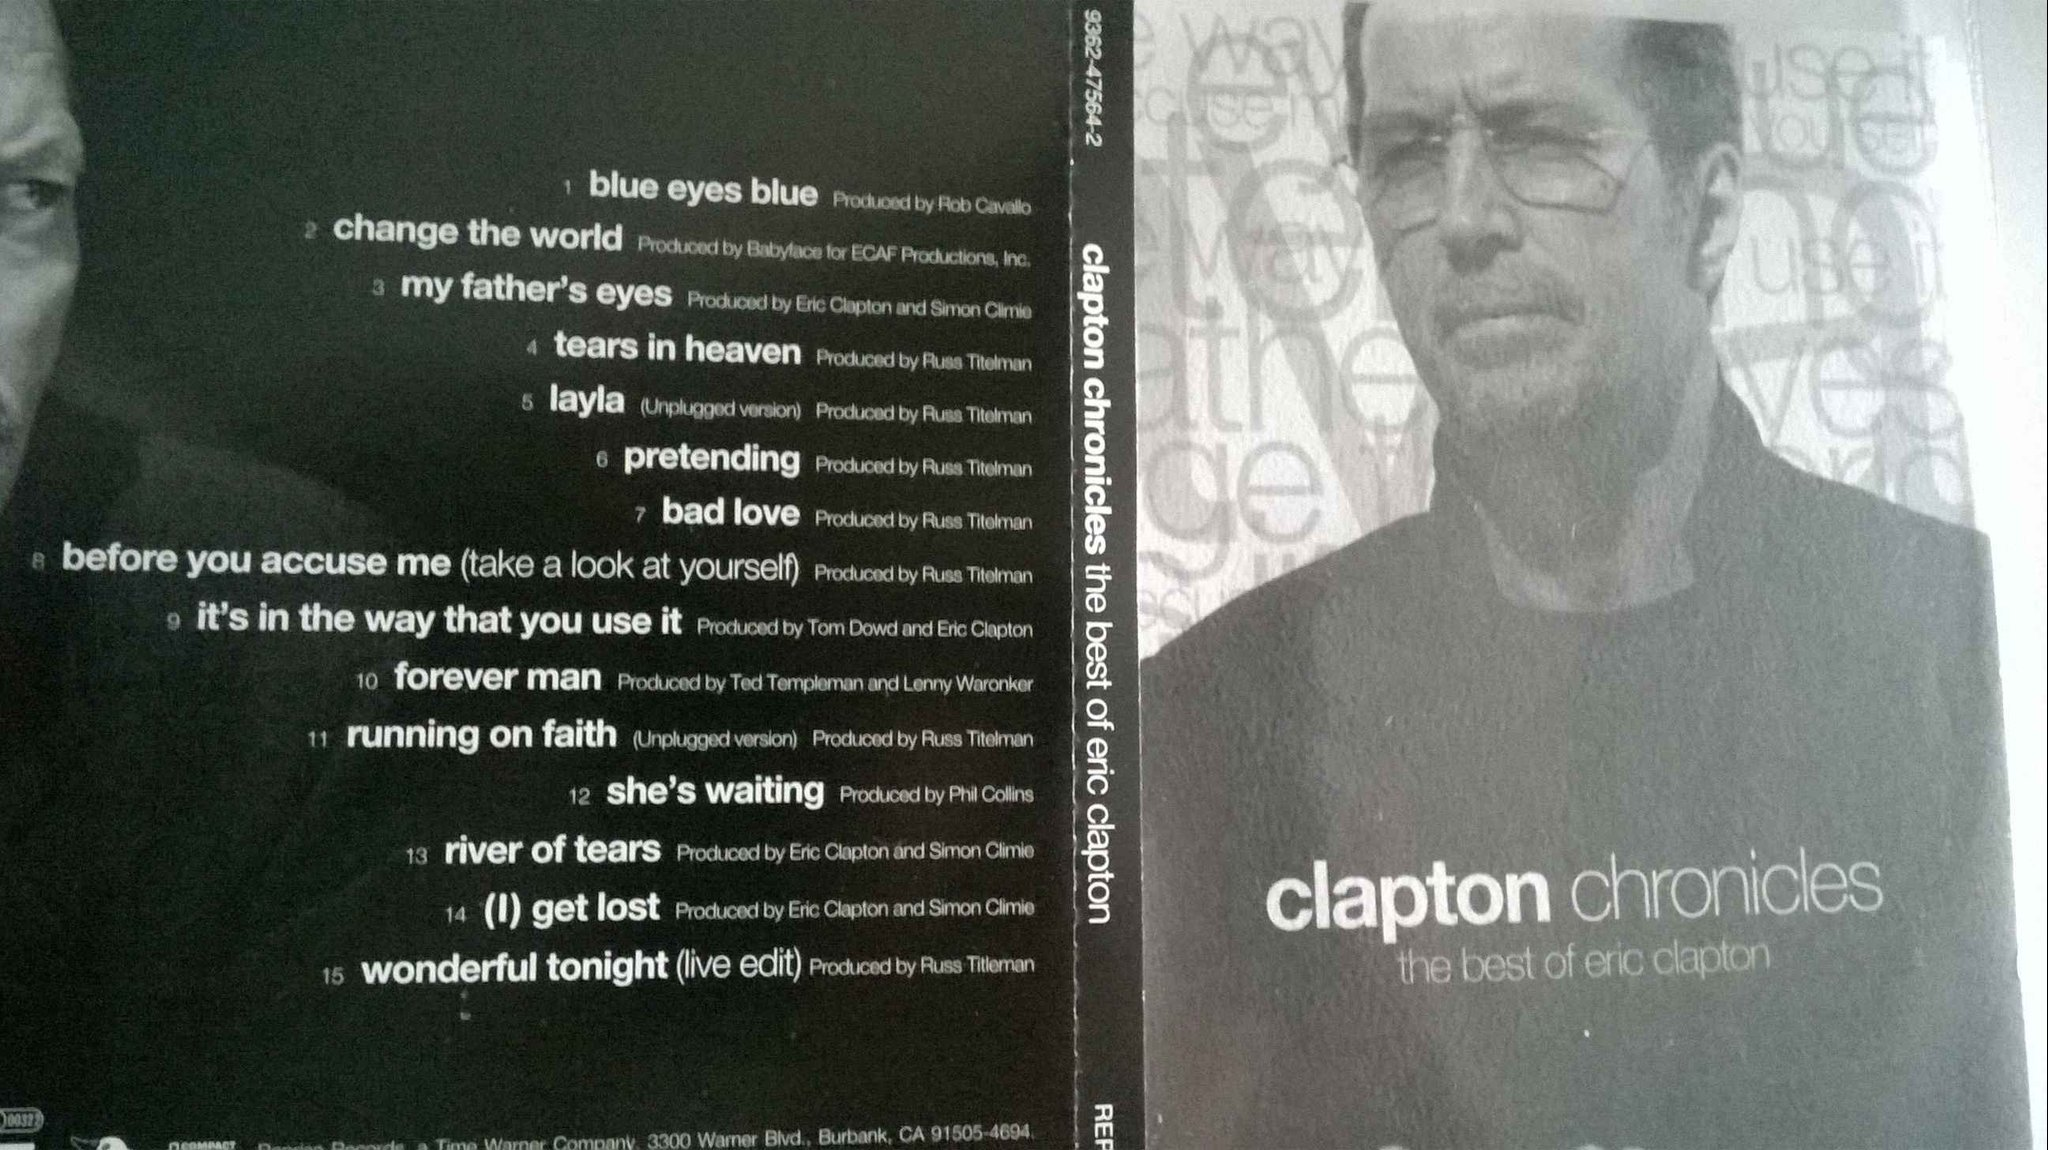 Clapton Chronicles (The Best Of Eric Clapton) CD, rare!